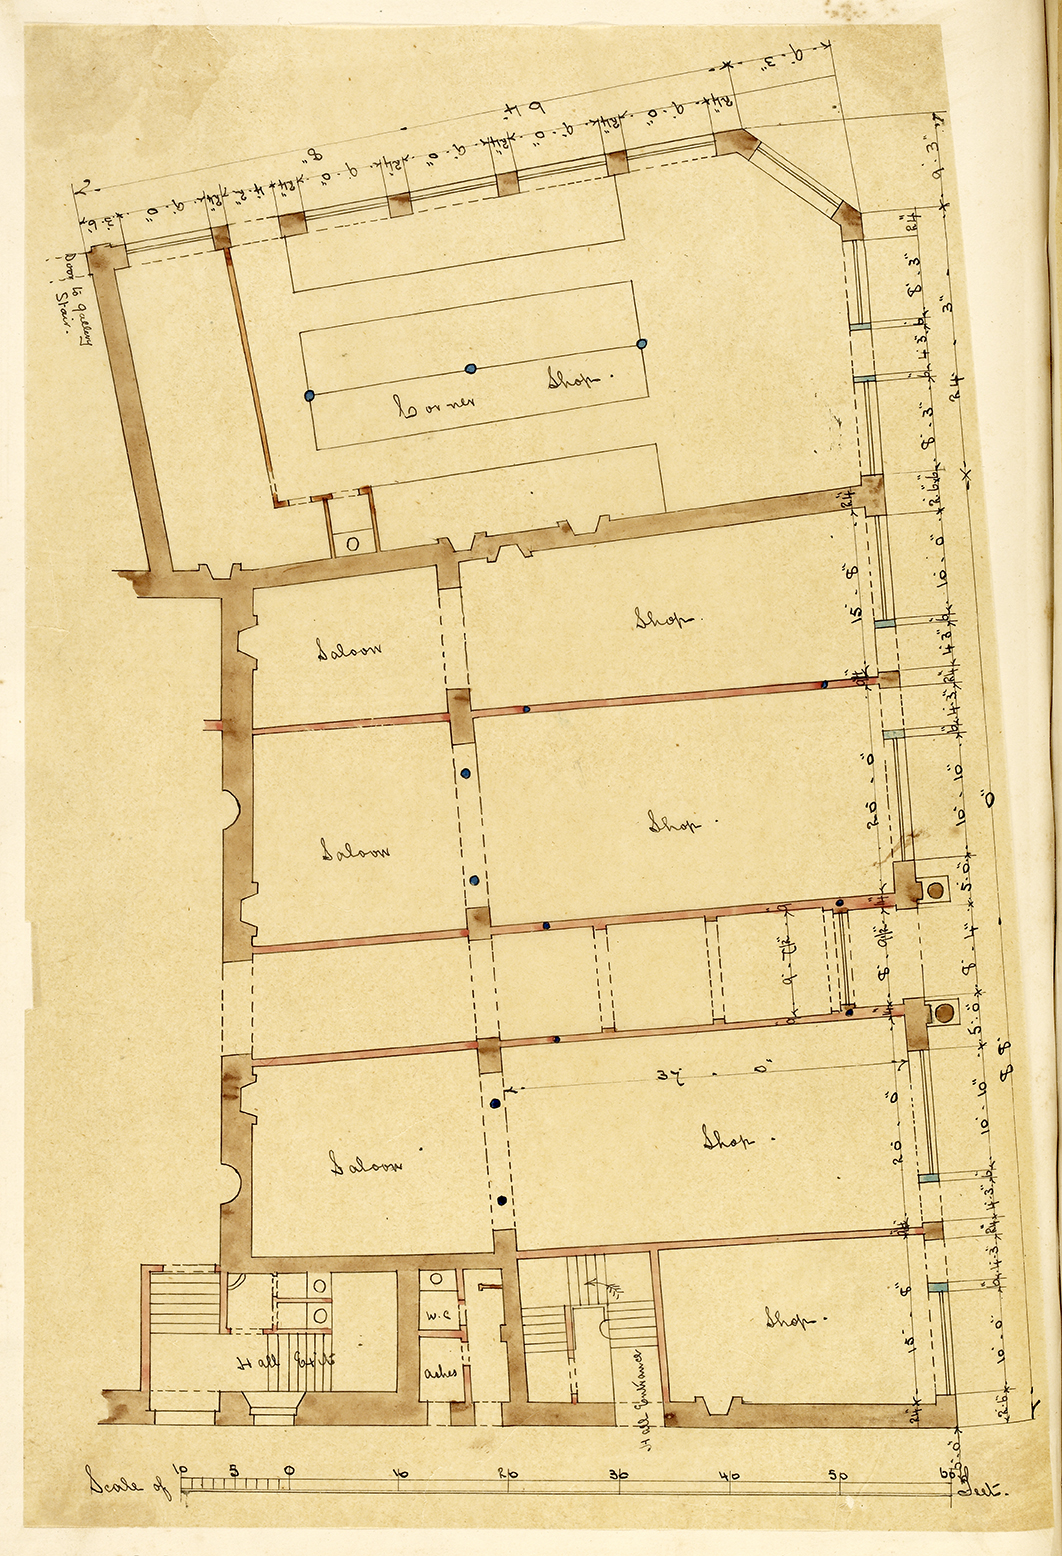 George Bell, Architectural Plan, 1867